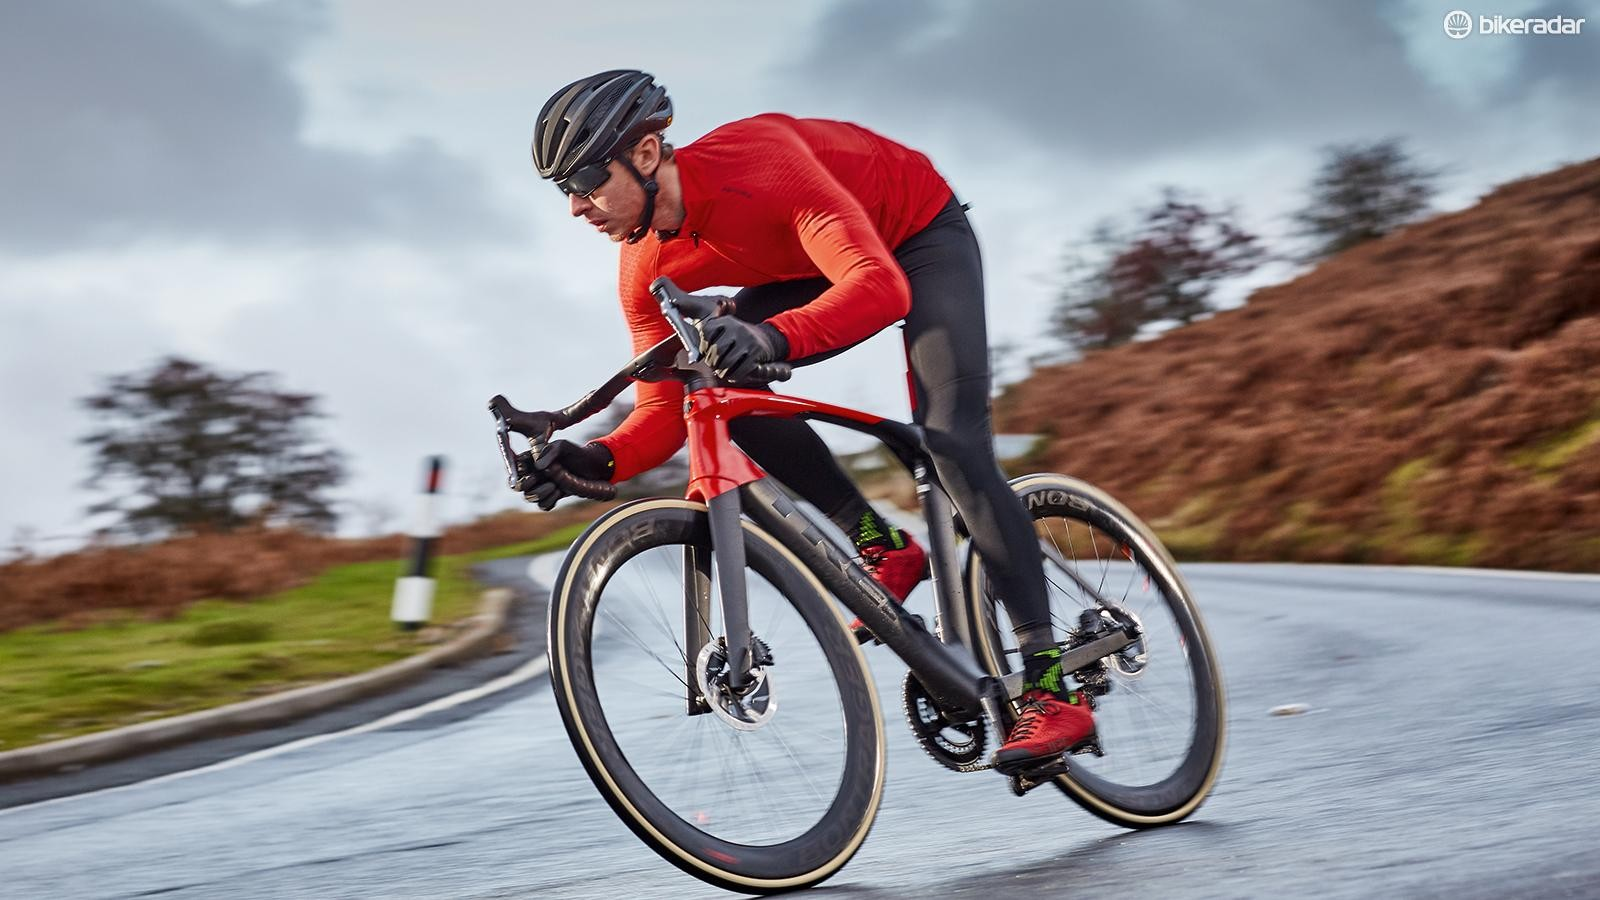 Trek's Madone SLR 9 has the speed of a race bike but the compliance of an endurance machine